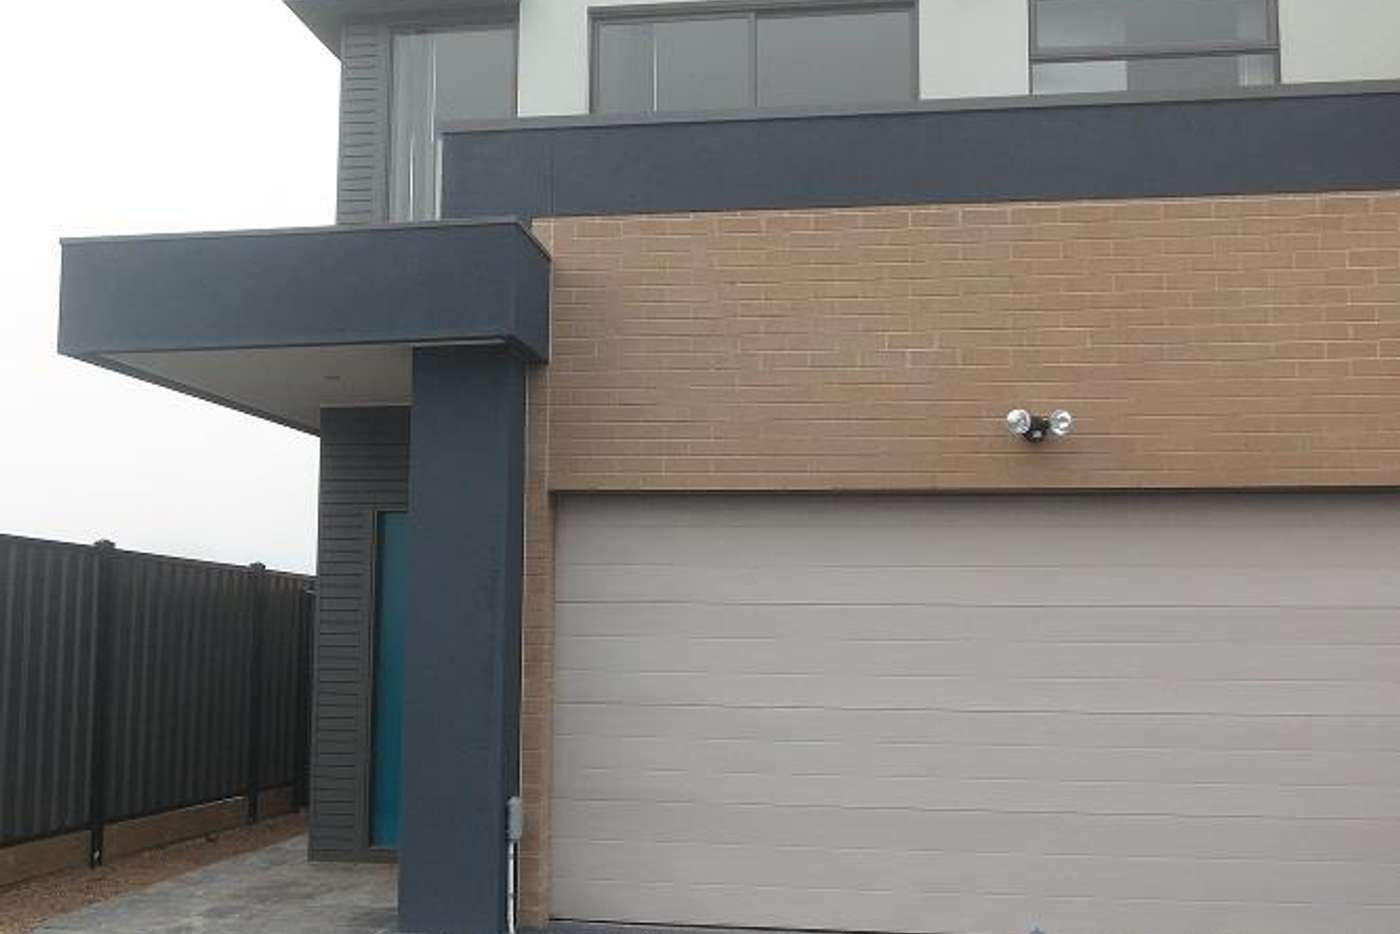 Main view of Homely townhouse listing, 10/4 Delany Lane, Craigieburn VIC 3064